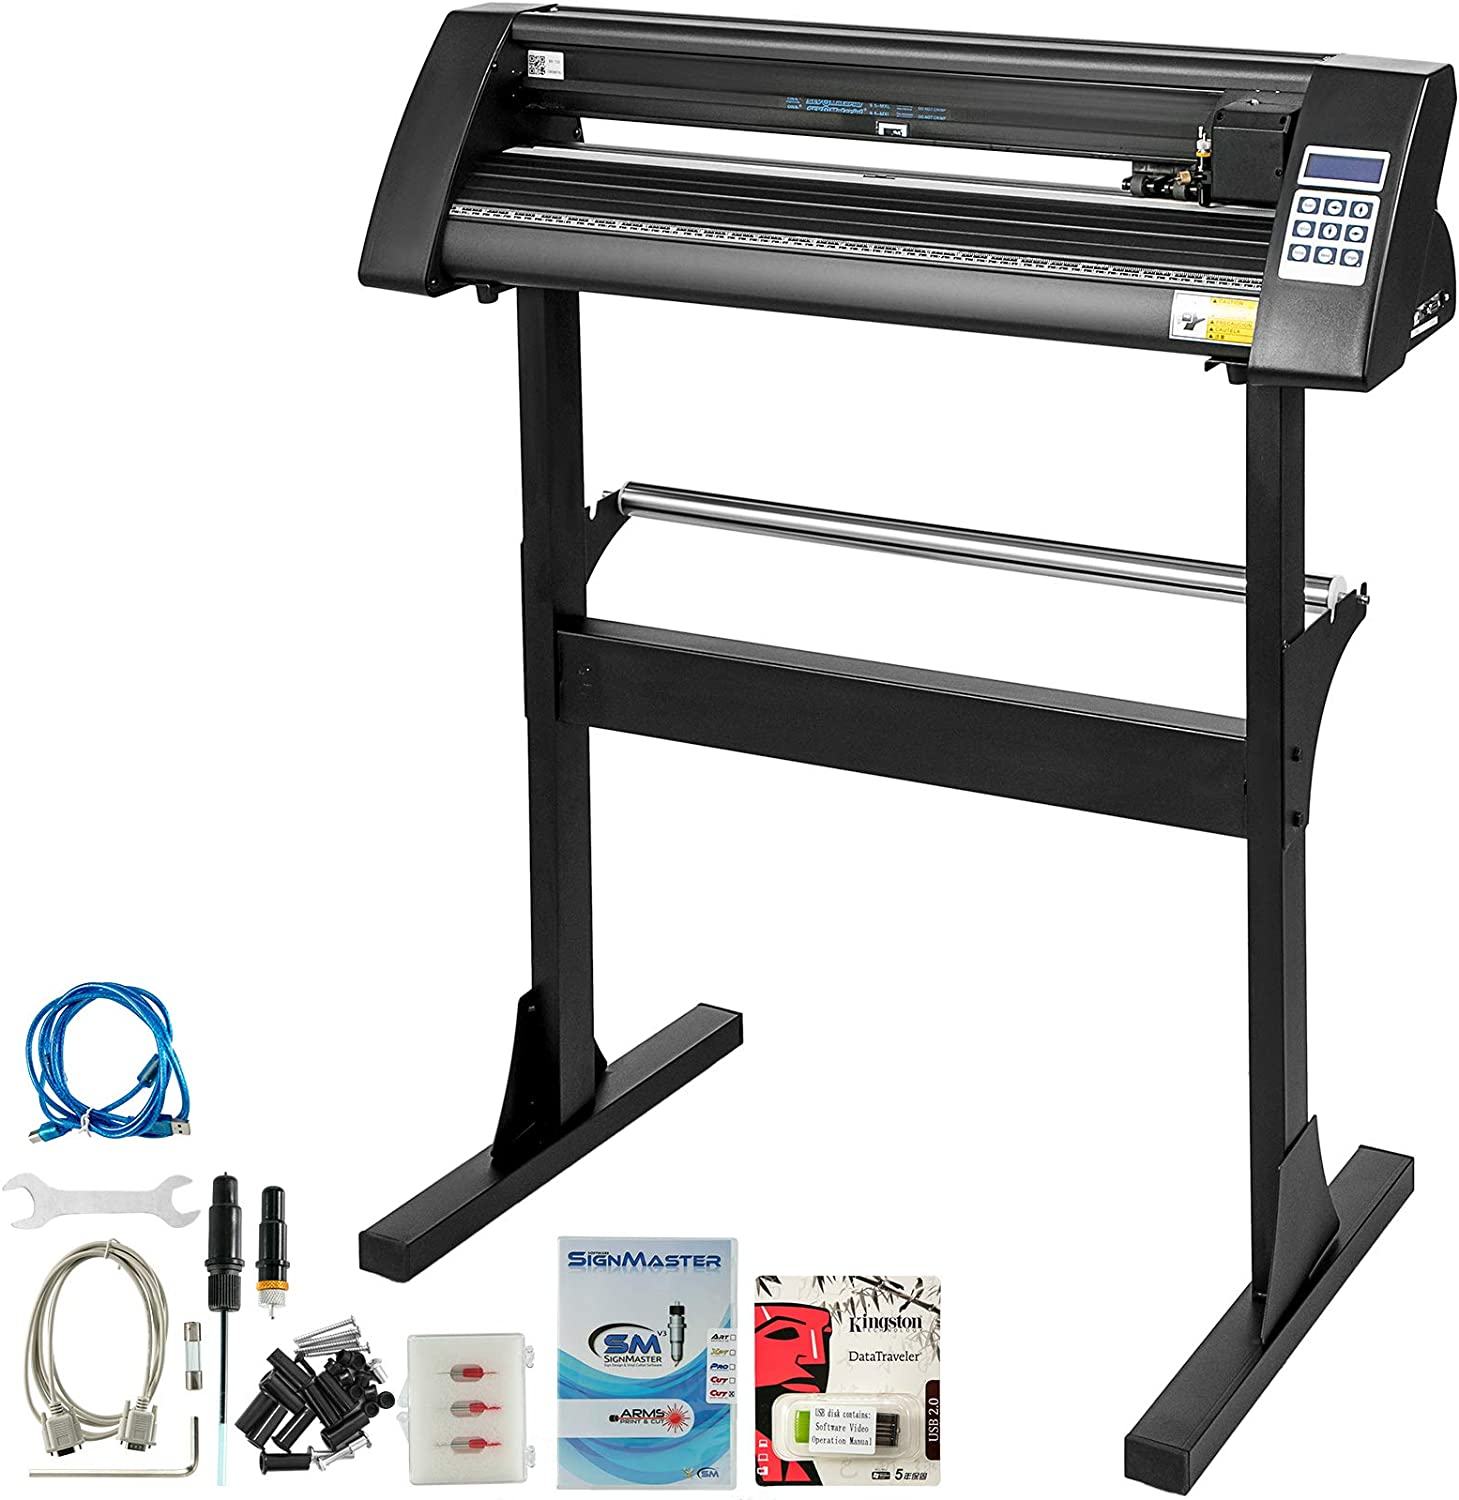 VEVOR Vinyl Cutter 28 Inch Vinyl Cutter Machine 720mm Paper Feed Vinyl Plotter Cutter Machine with Sturdy Floor Stand Vinyl Cutter Plotter Machine for Cutting Paper(Black)